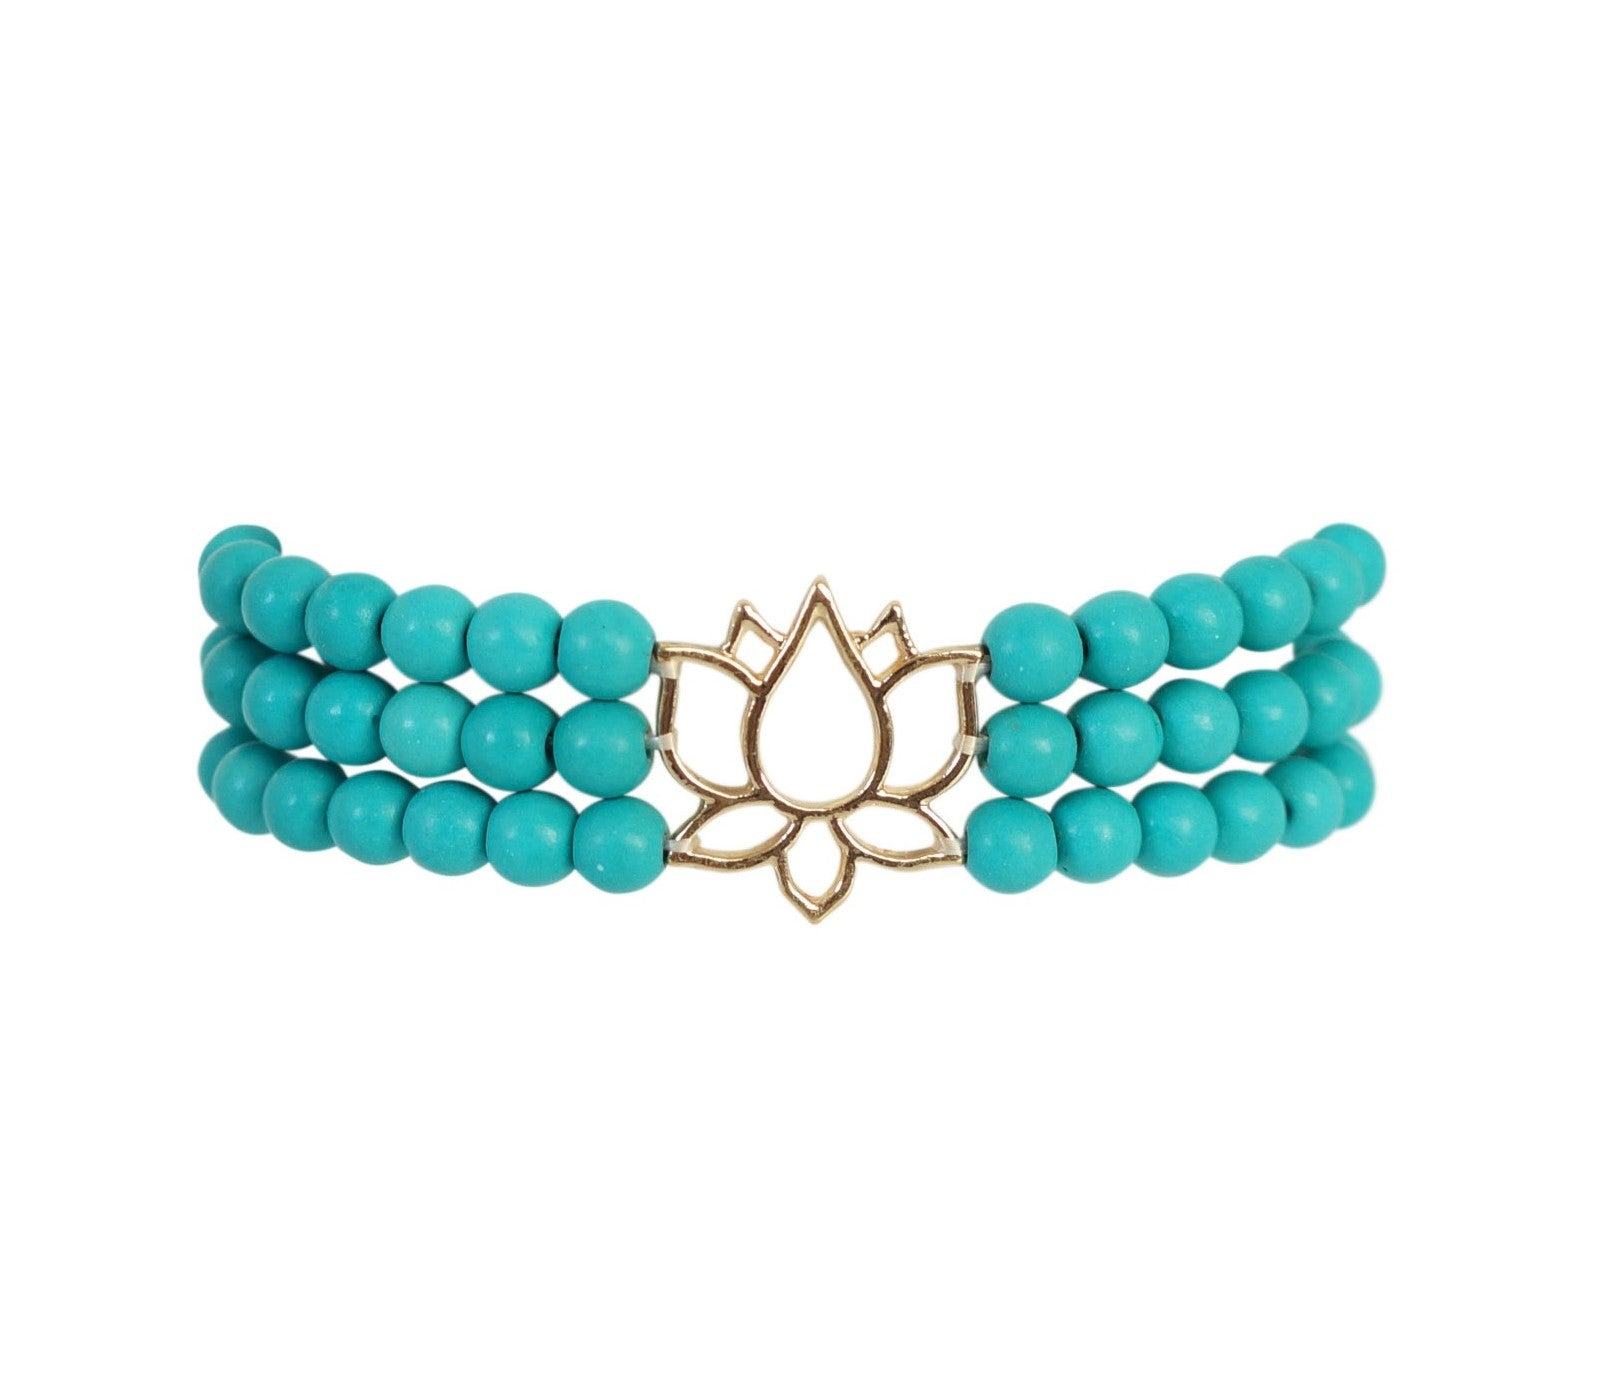 Connected Lotus Bracelet - Carolyn Hearn Designs